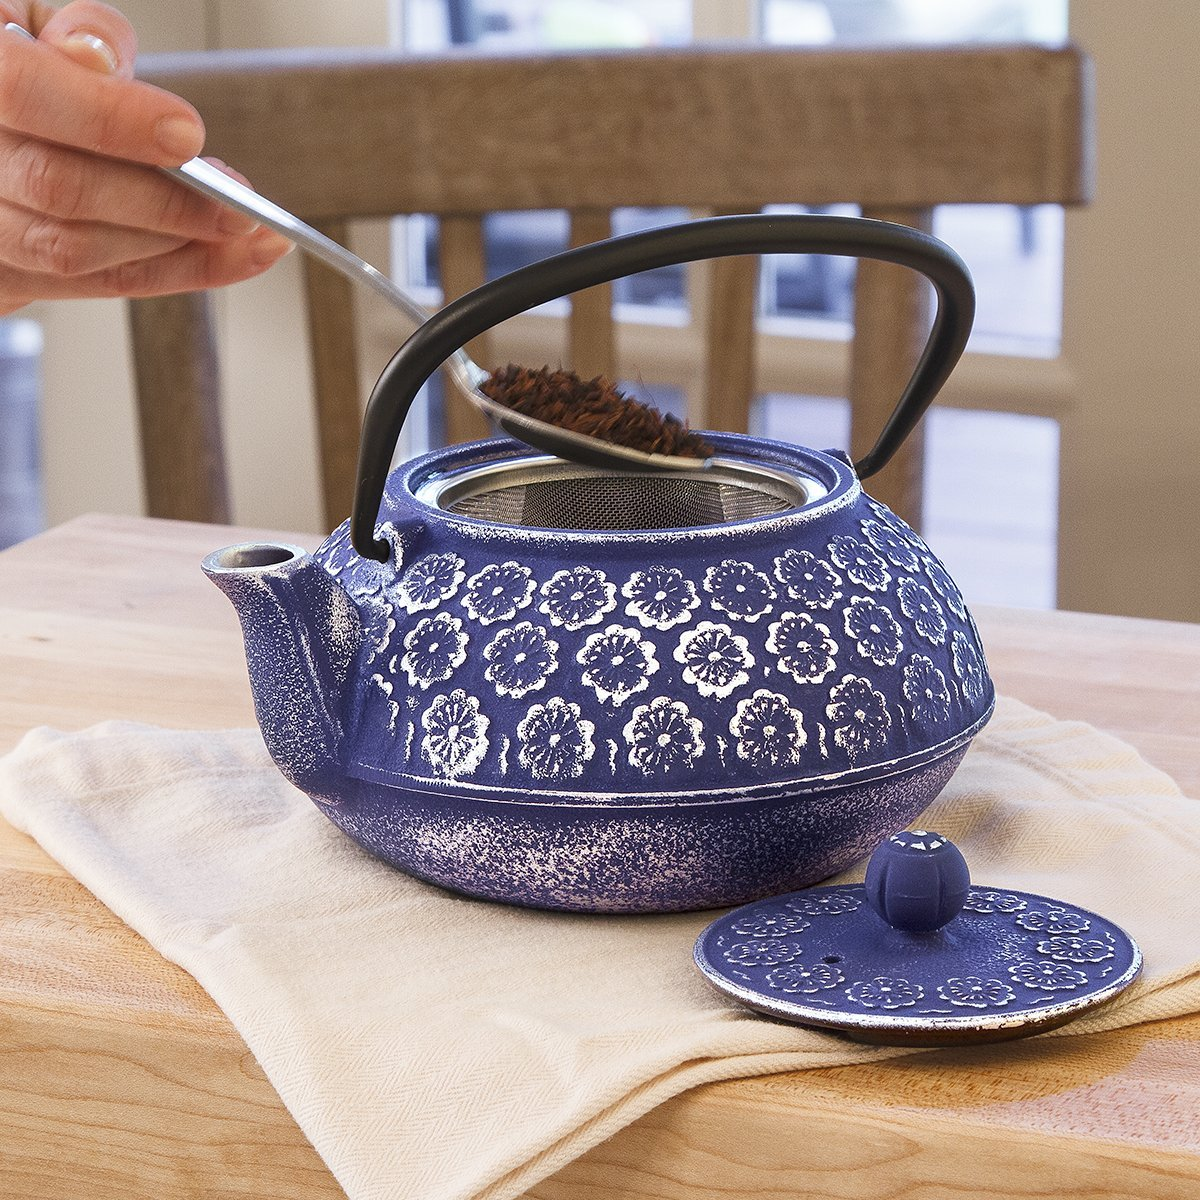 Primula Cast Iron Teapot | Blue Floral Design w/Stainless Steel Infuser,34 oz | Amazon